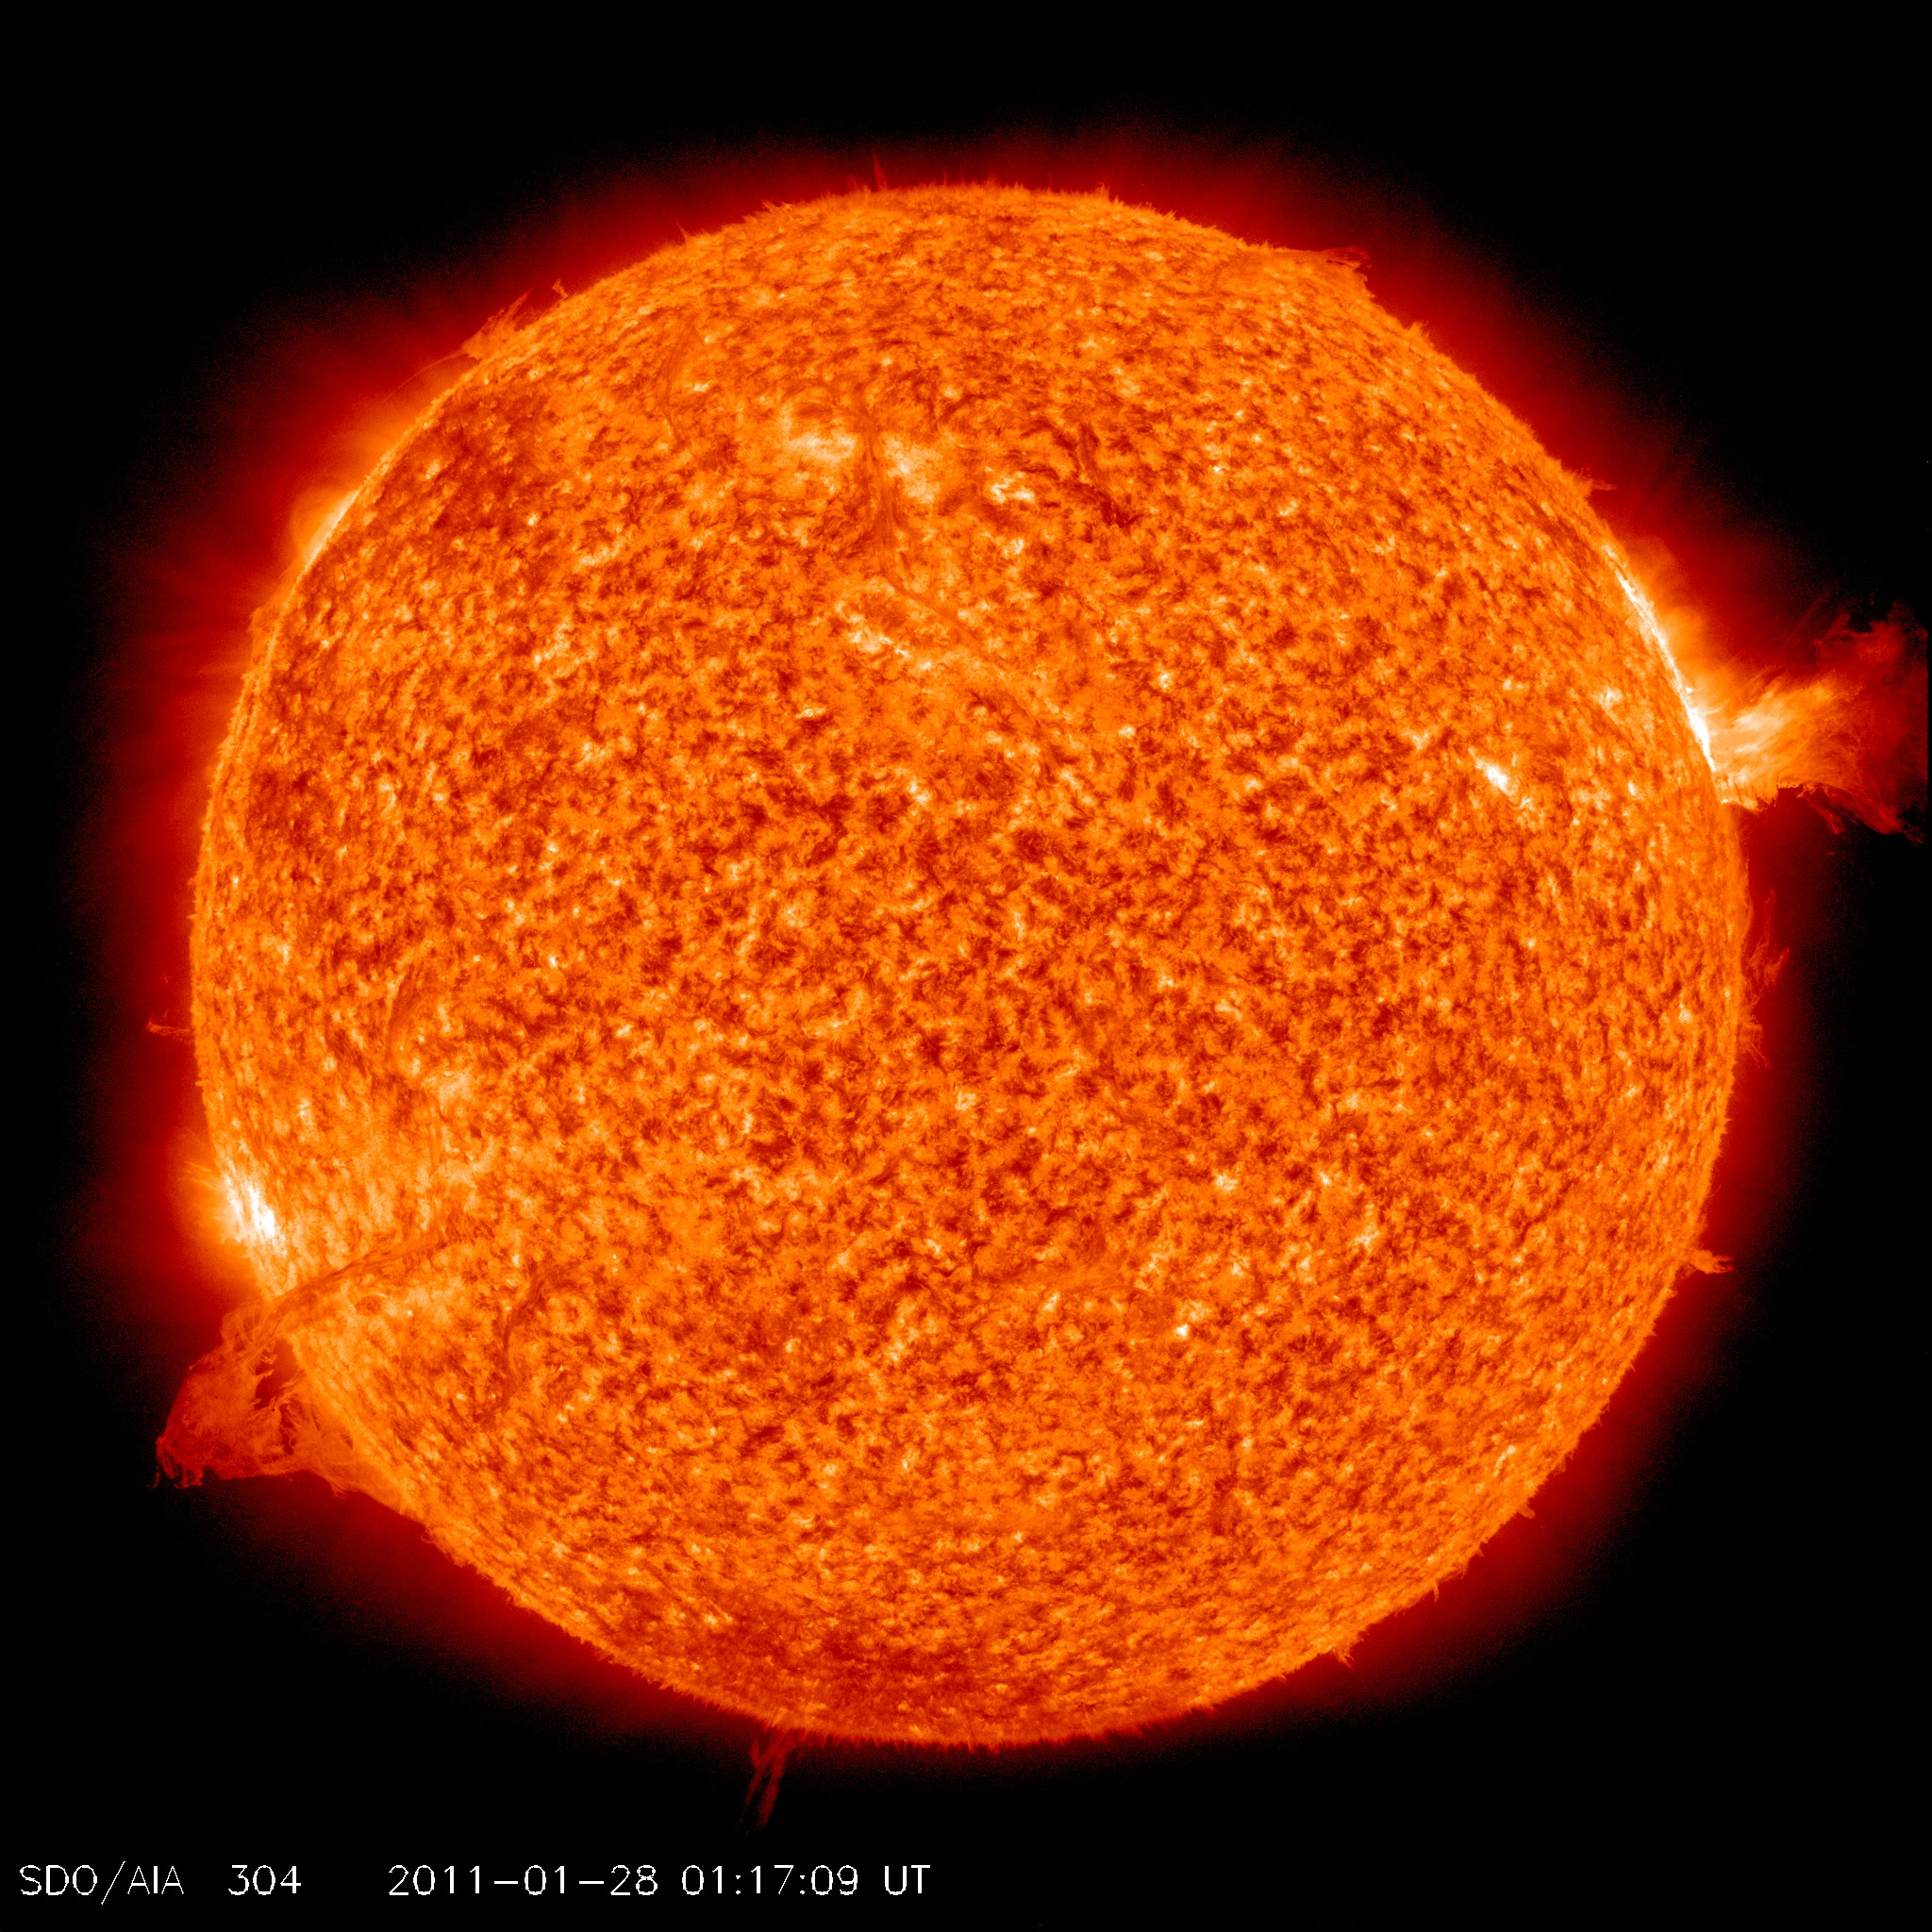 http://sdo.gsfc.nasa.gov/assets/img/browse/2011/01/28/20110128_011709_2048_0304.jpg